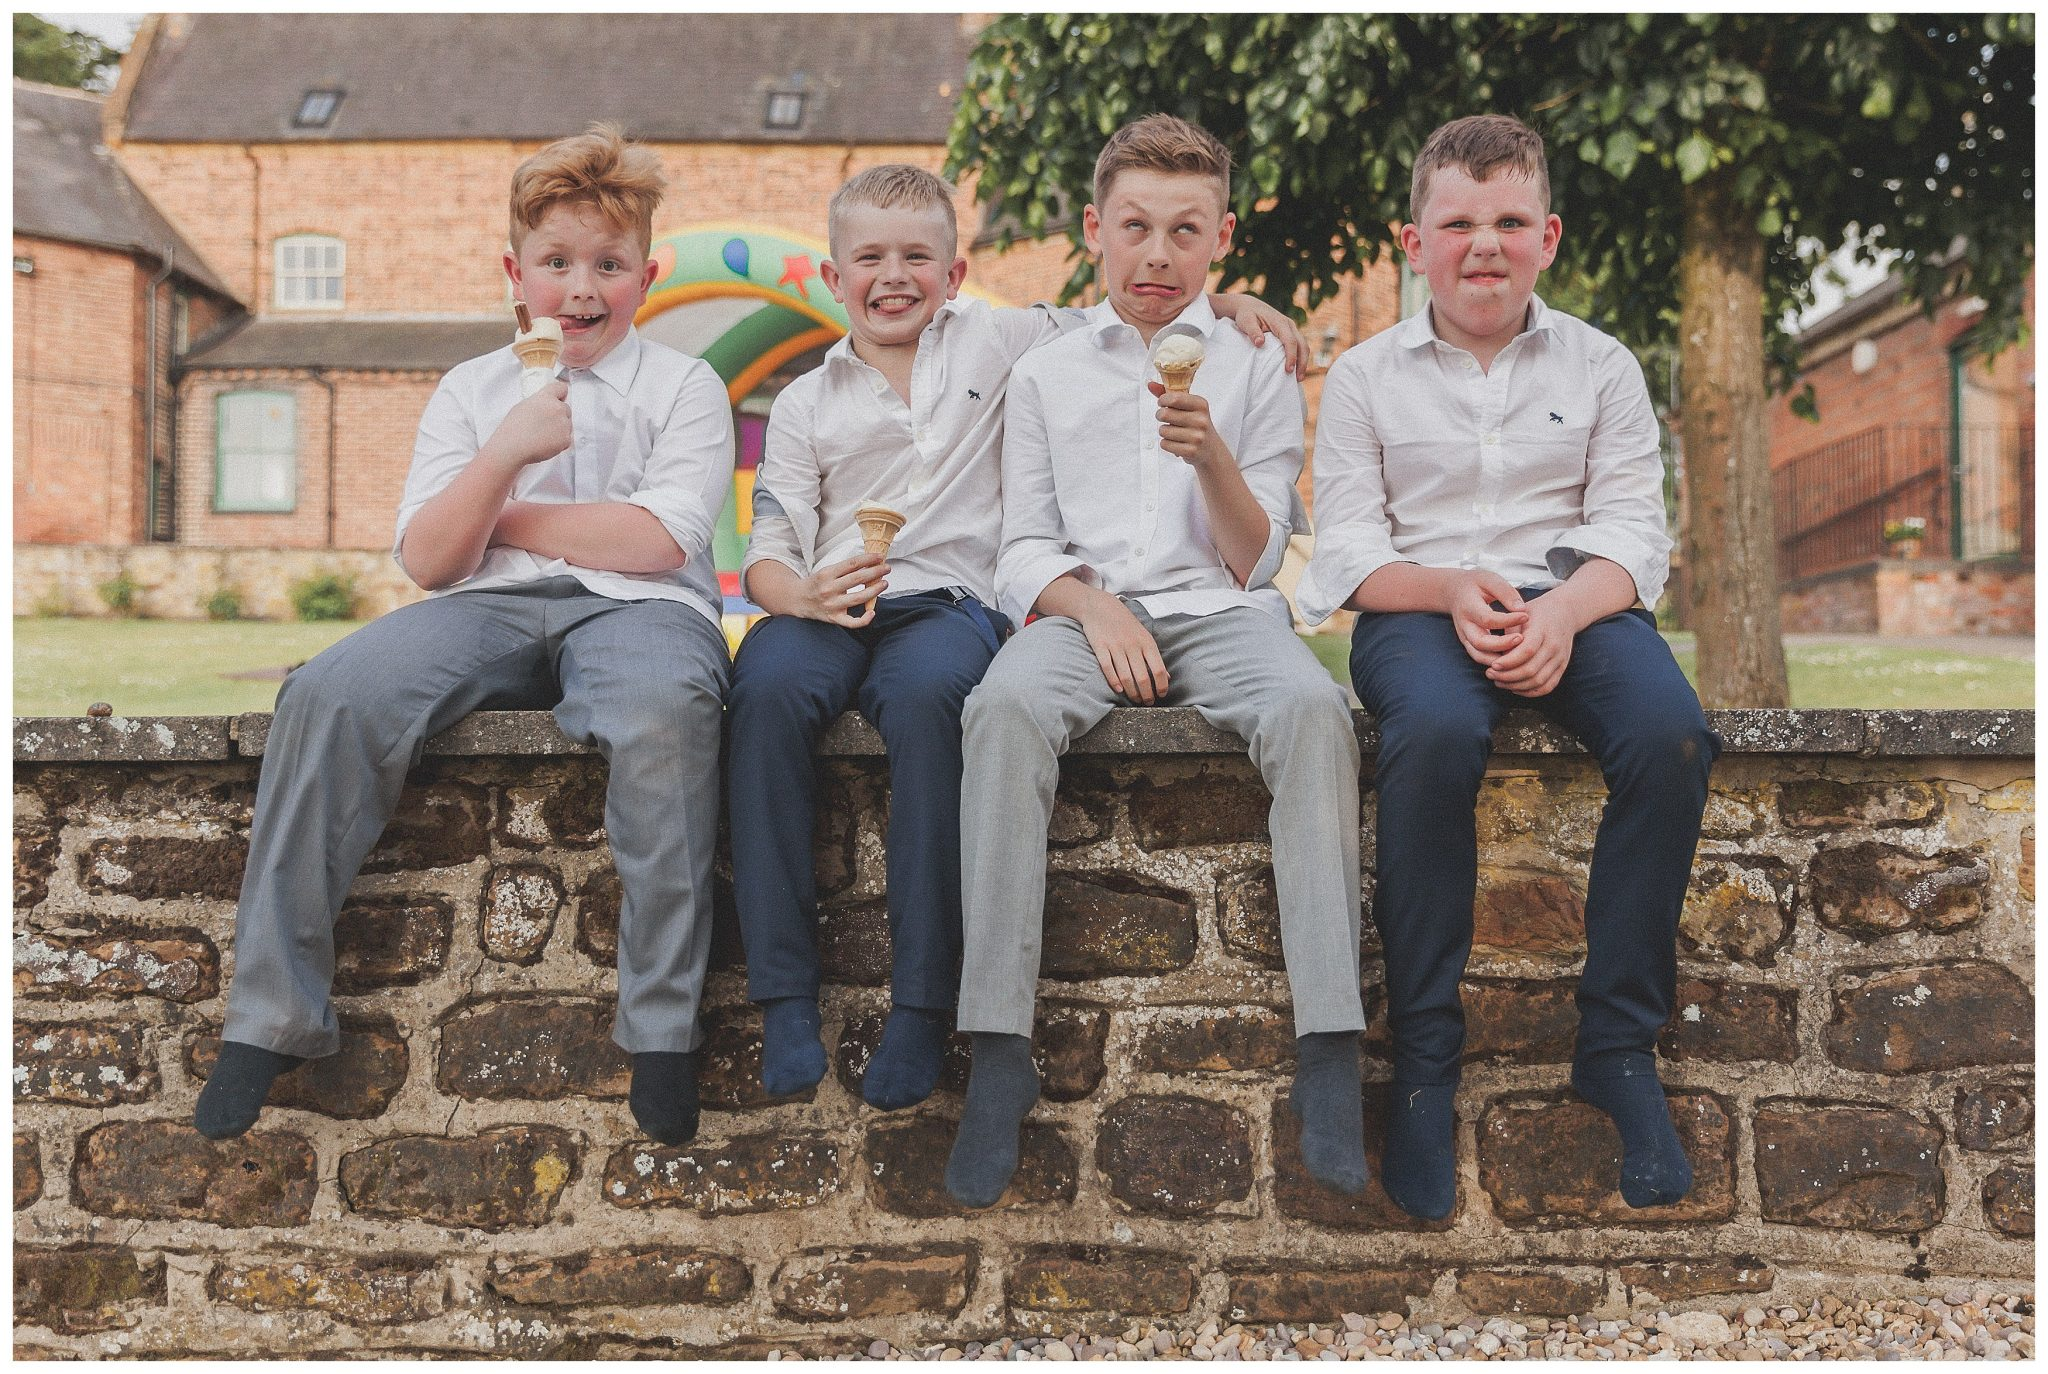 Boys sitting on a wall eating ice cream and pulling a silly face